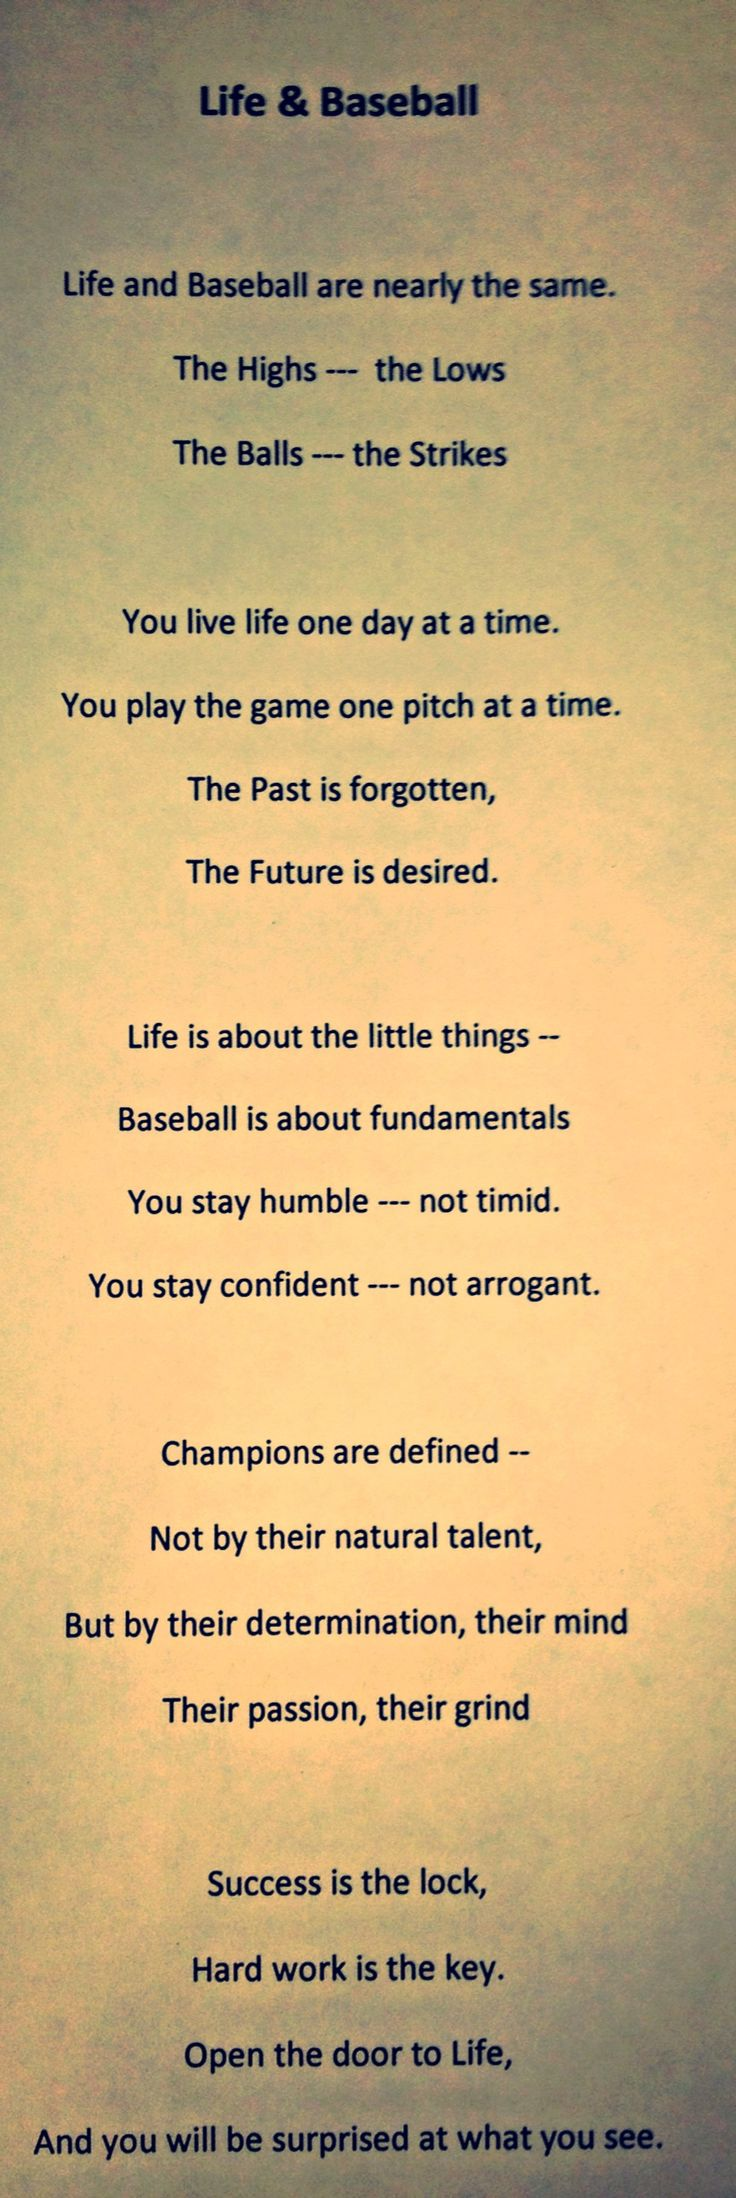 An original poem that relates life to baseball